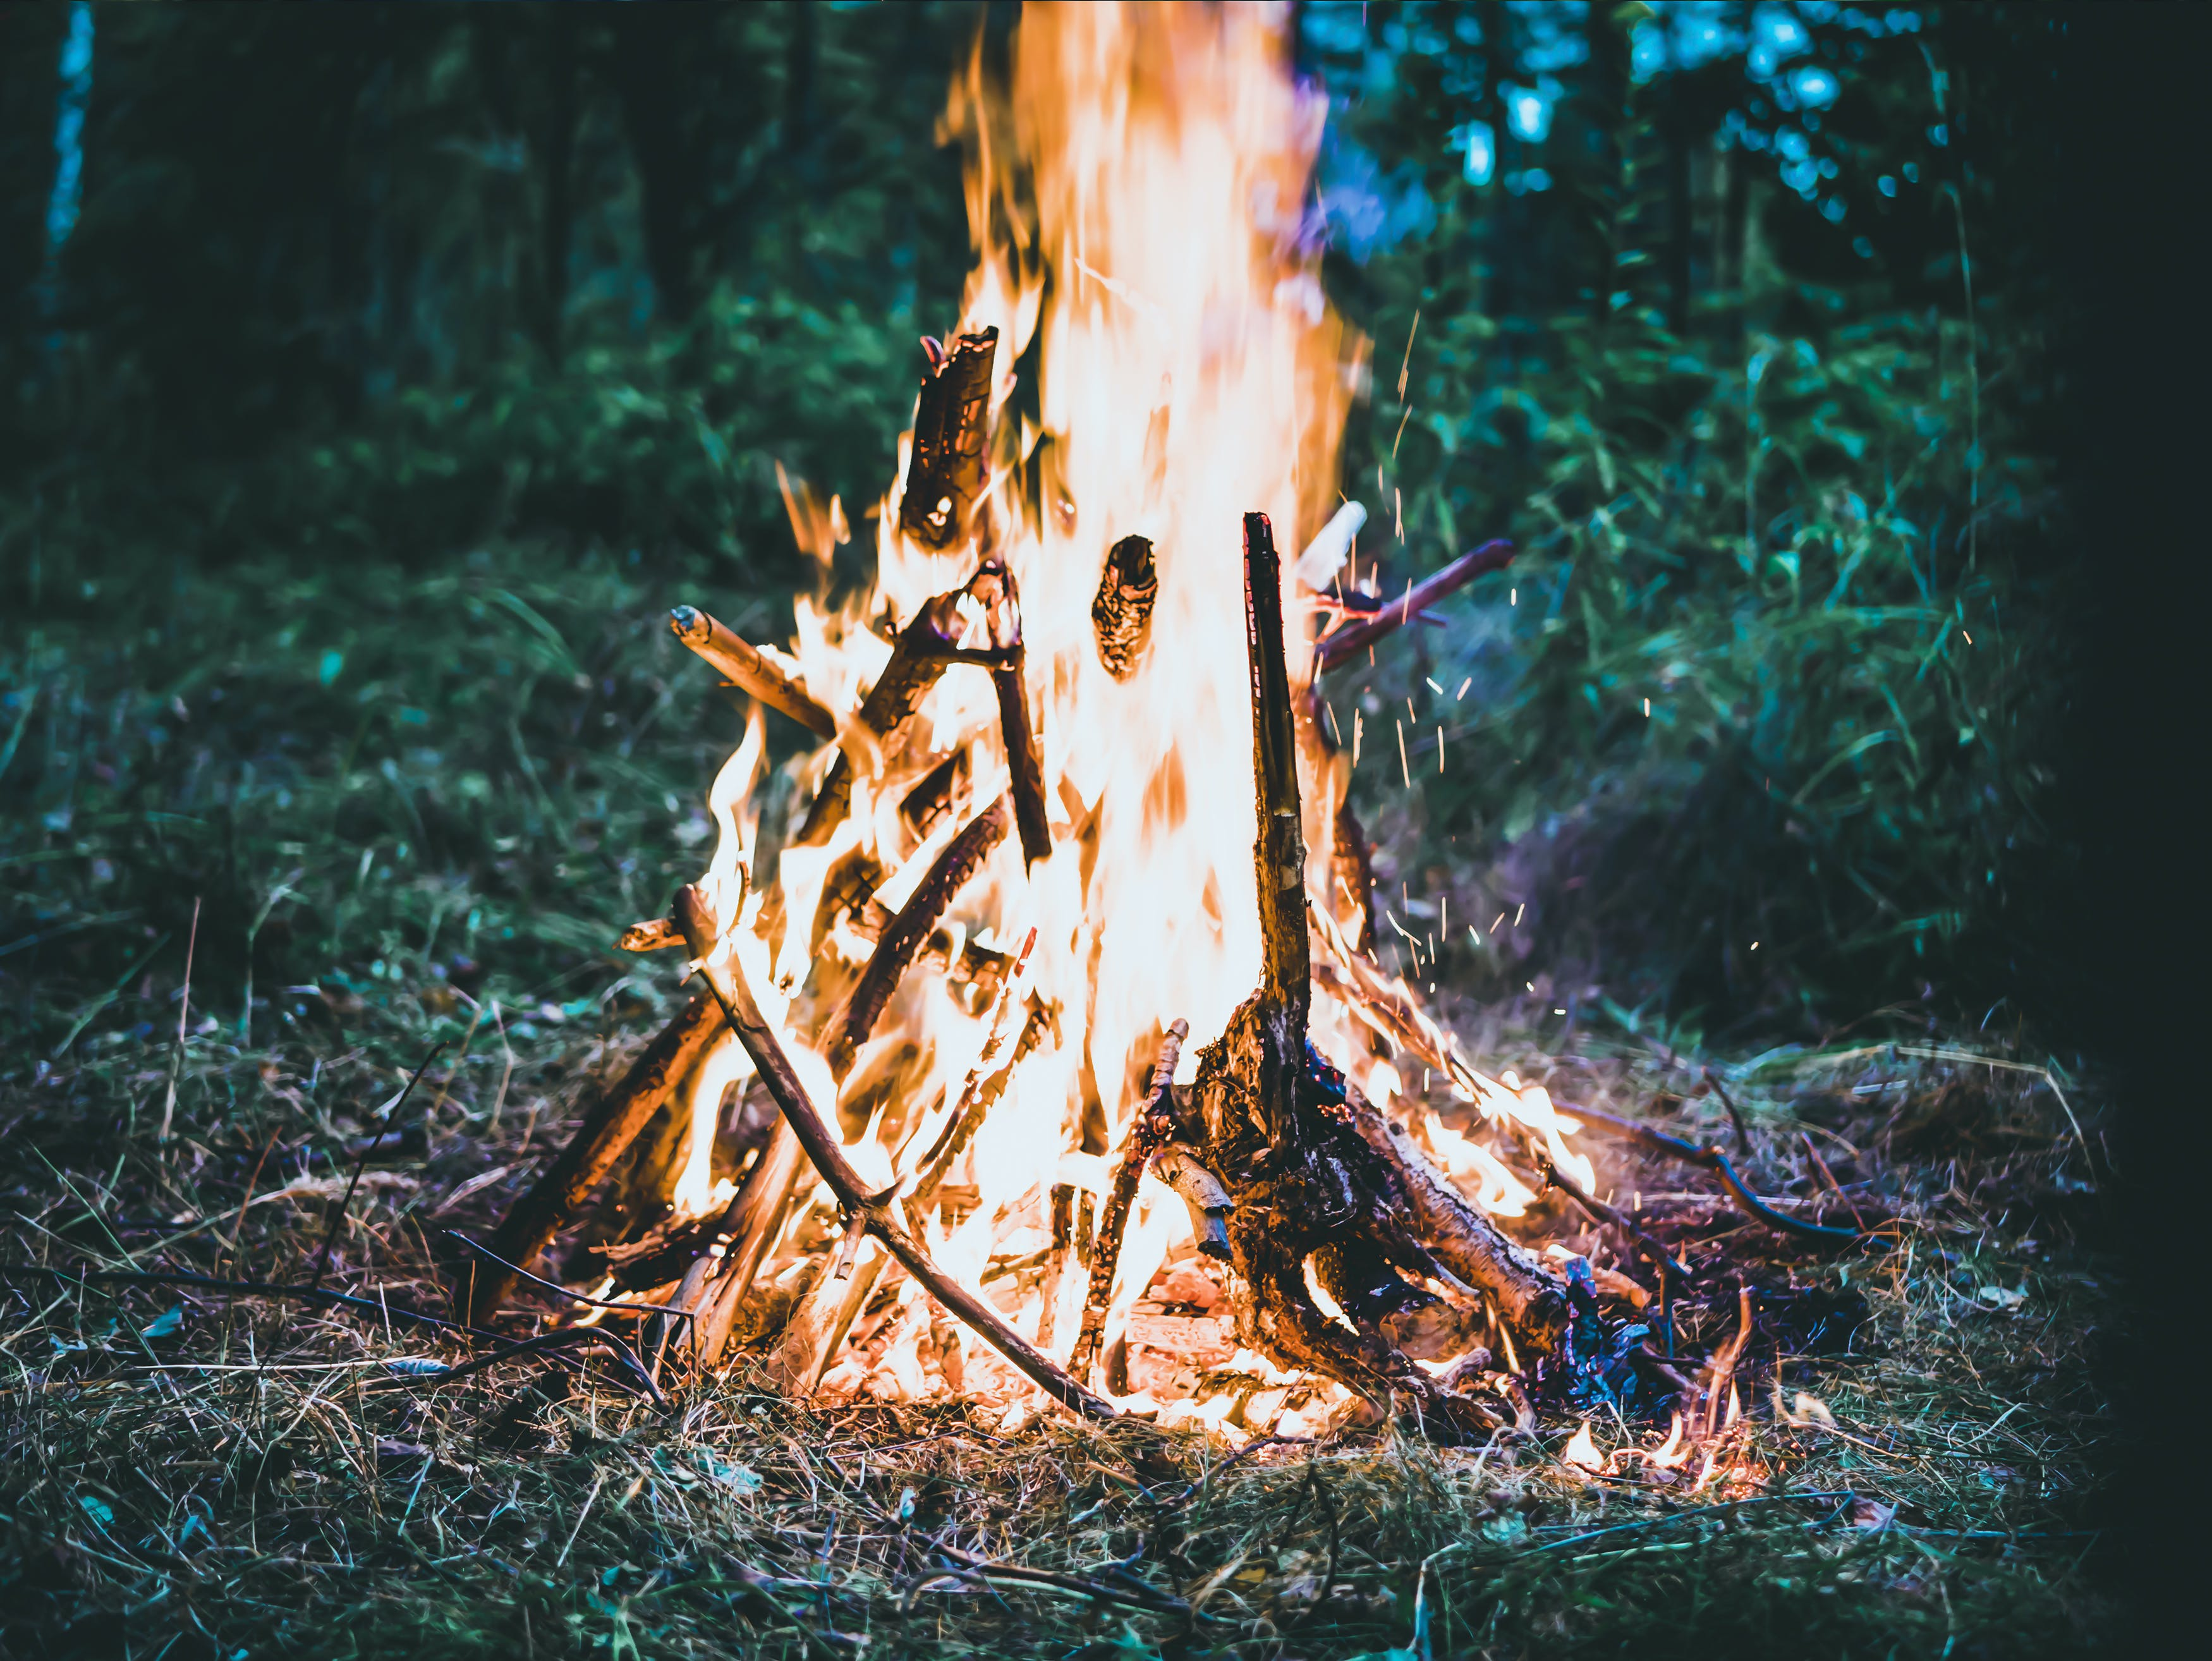 Bonfire on Forest Screengrab